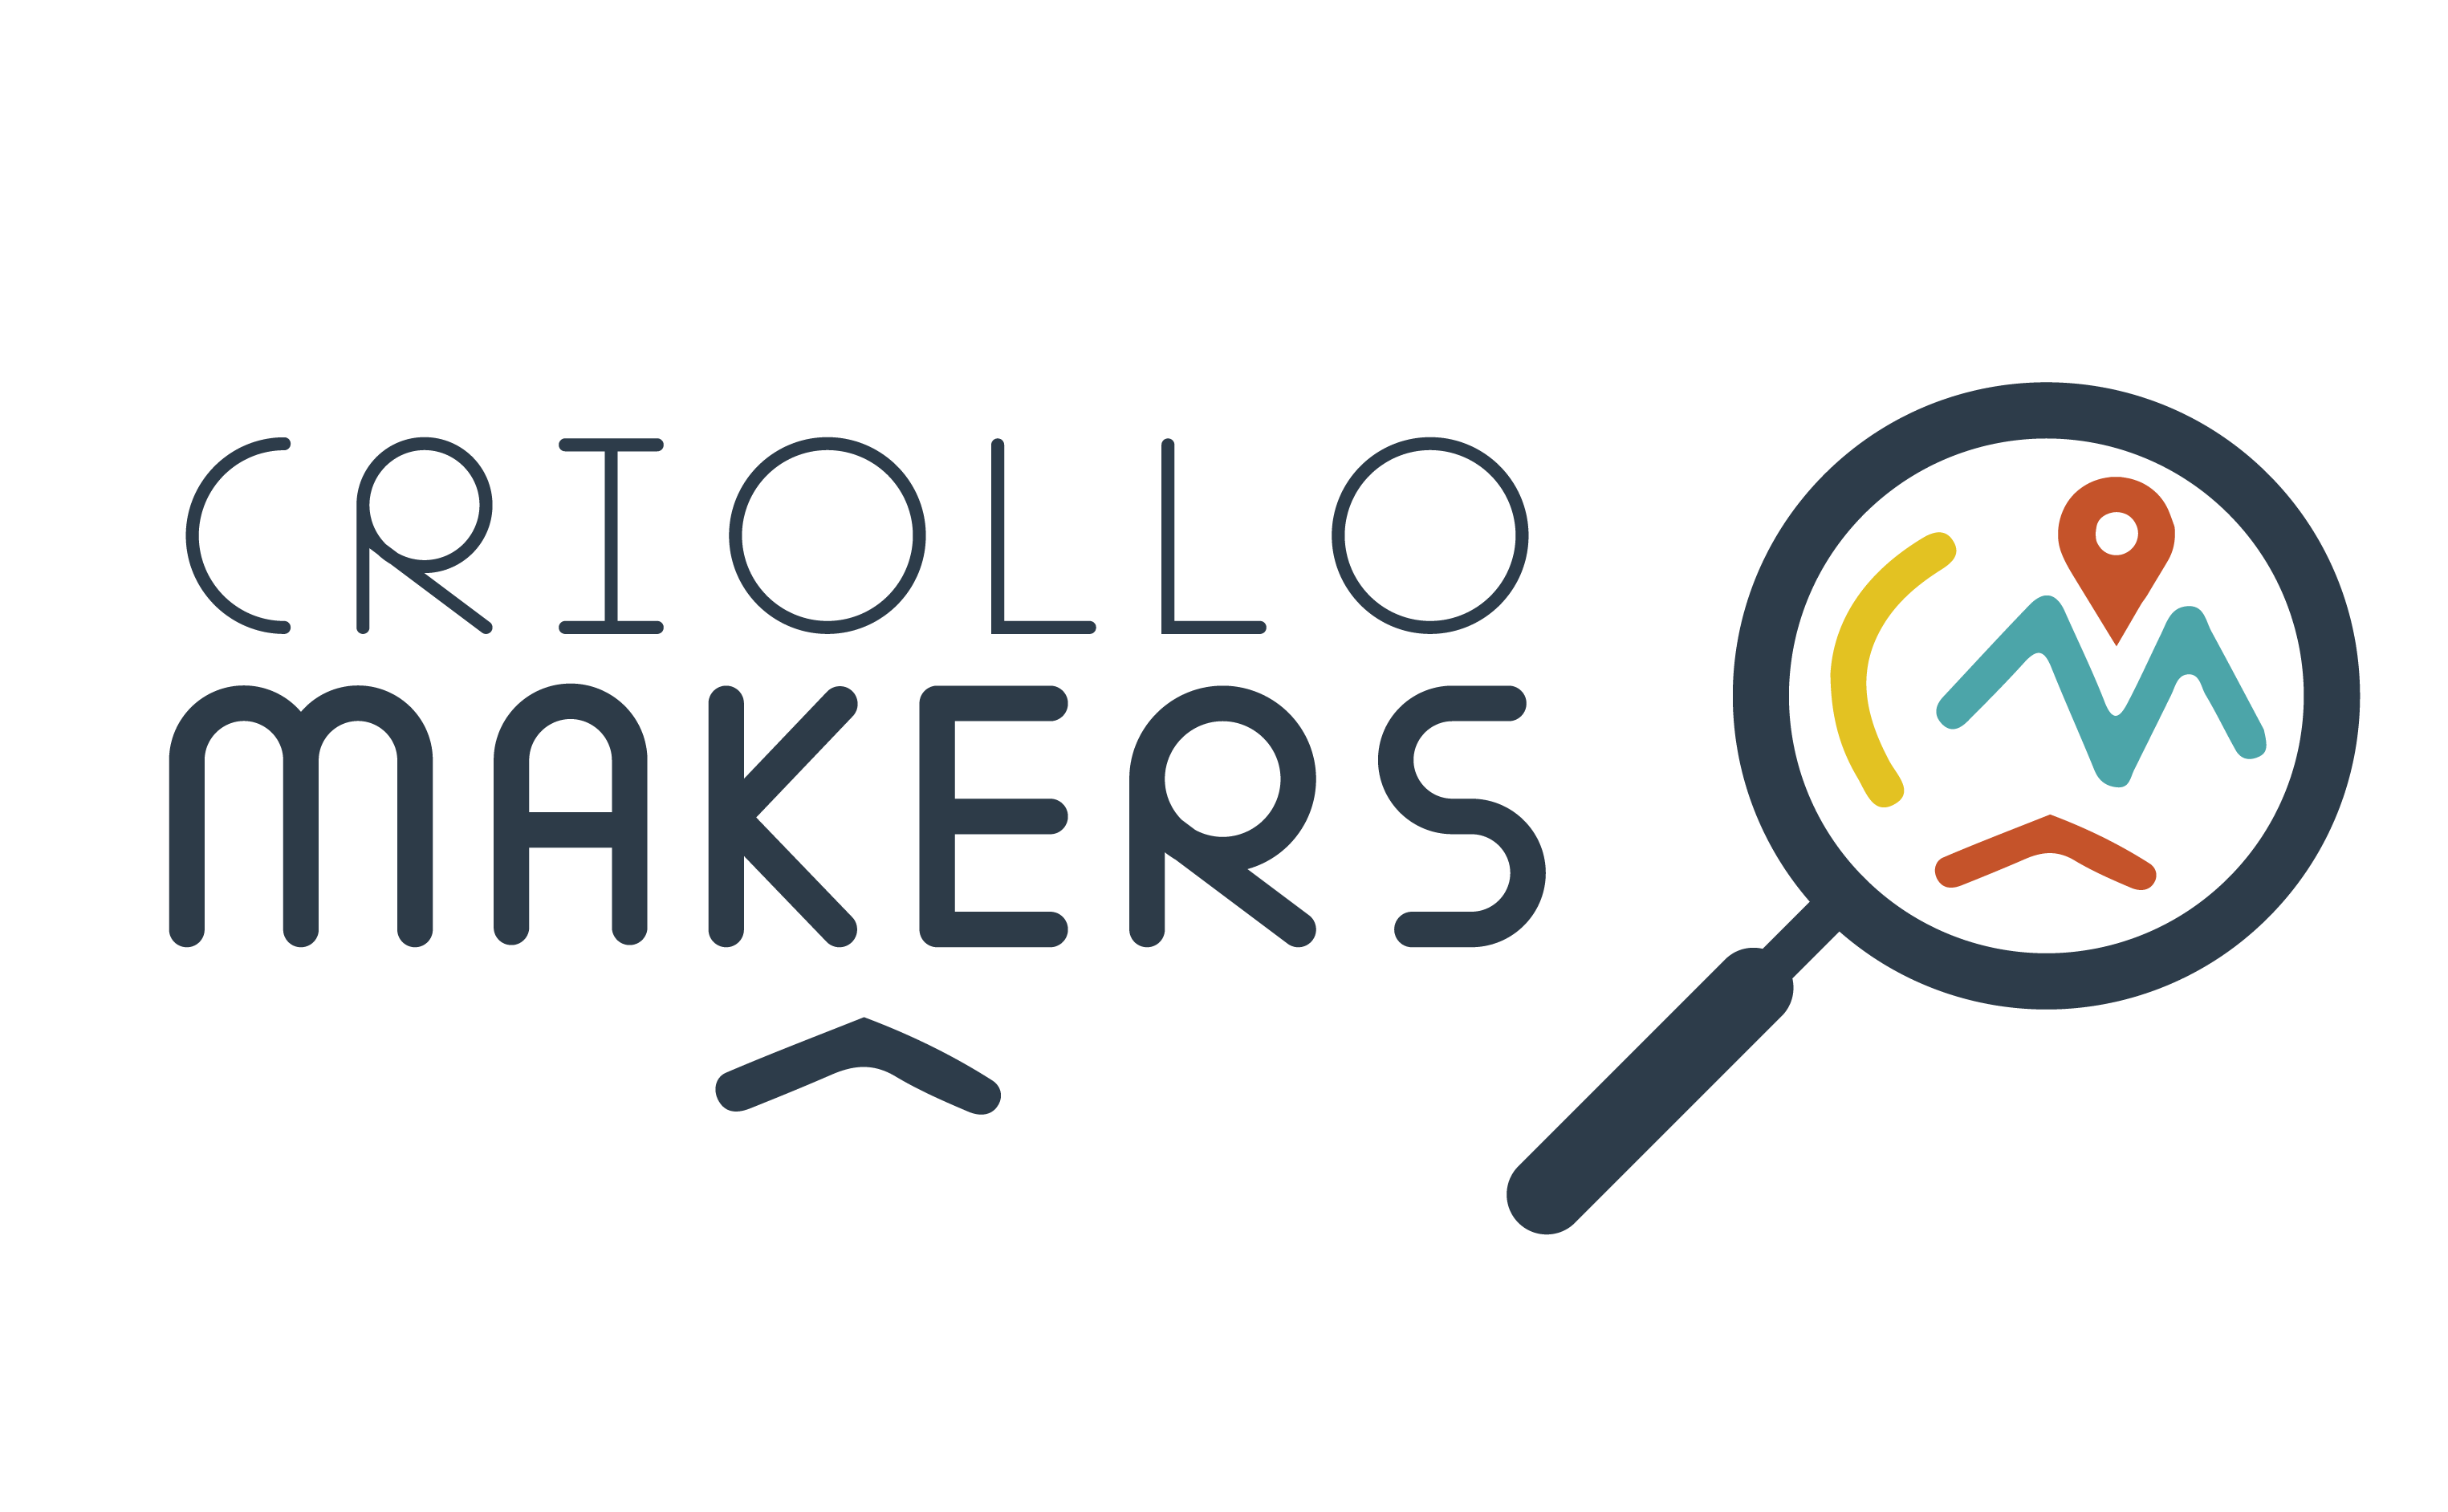 Criollo Makers